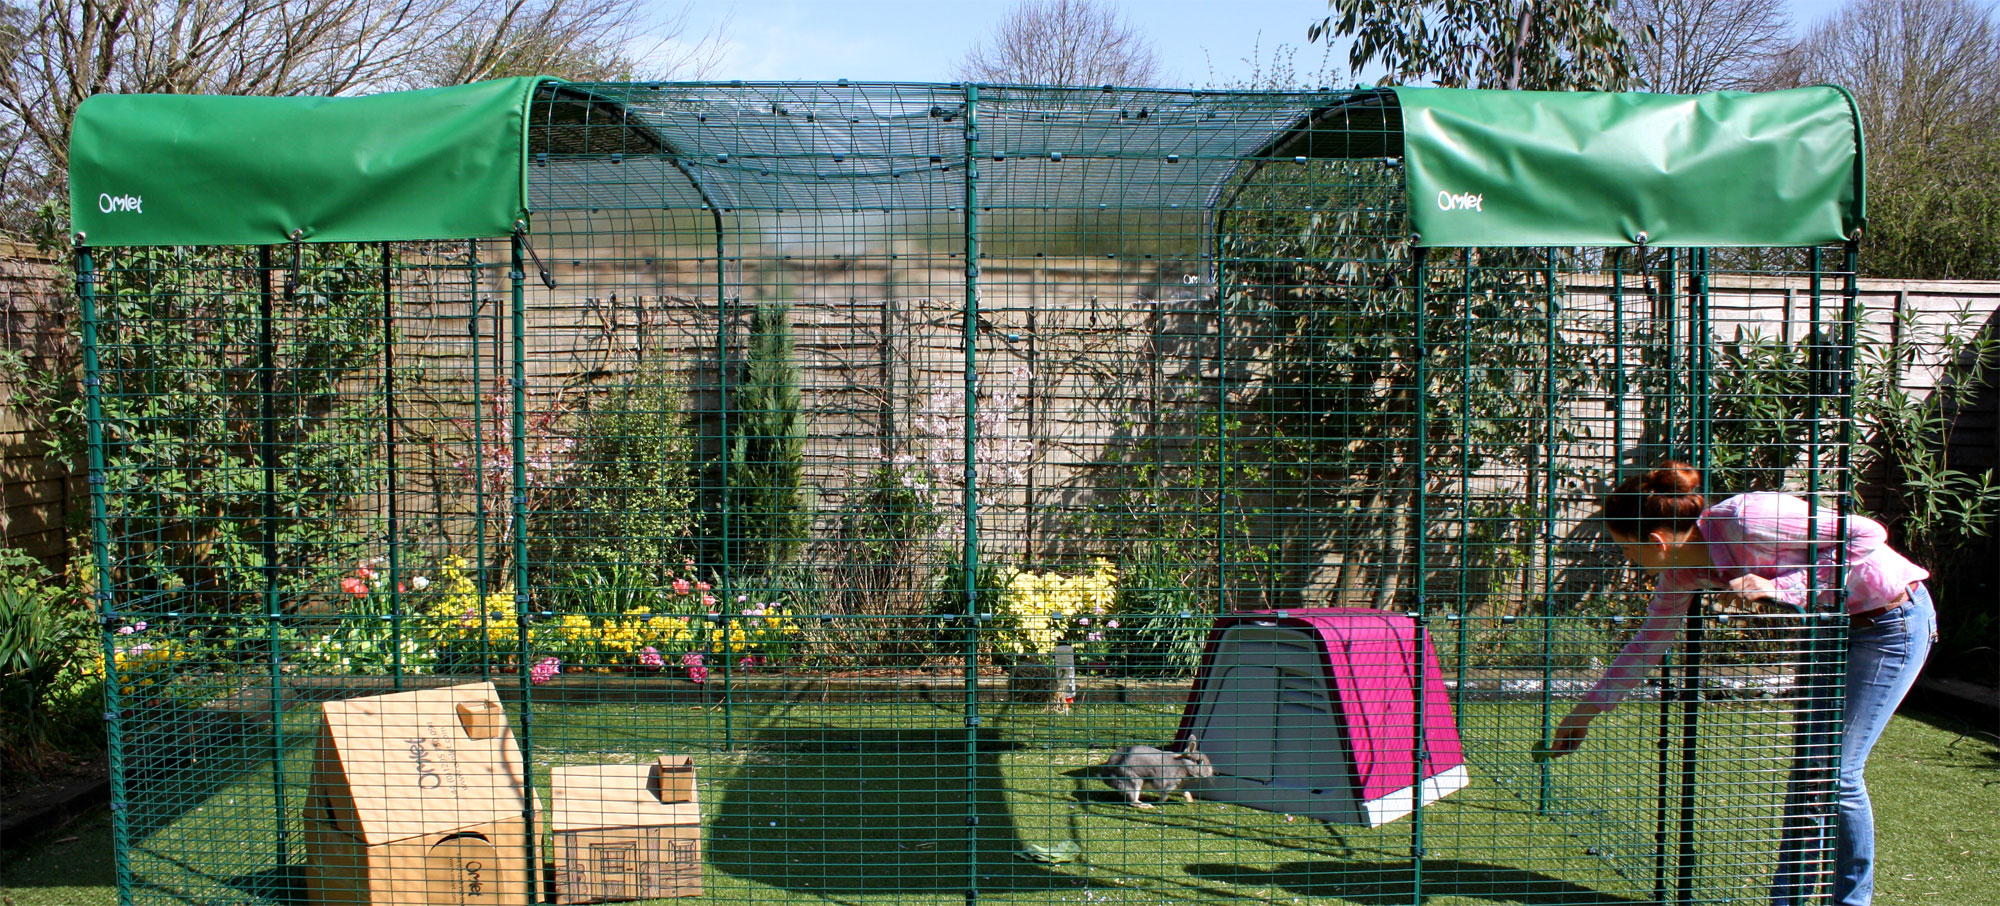 An extended 3x4x2 Outdoor Rabbit Run will give your pet rabbits lots of space to hop around in.